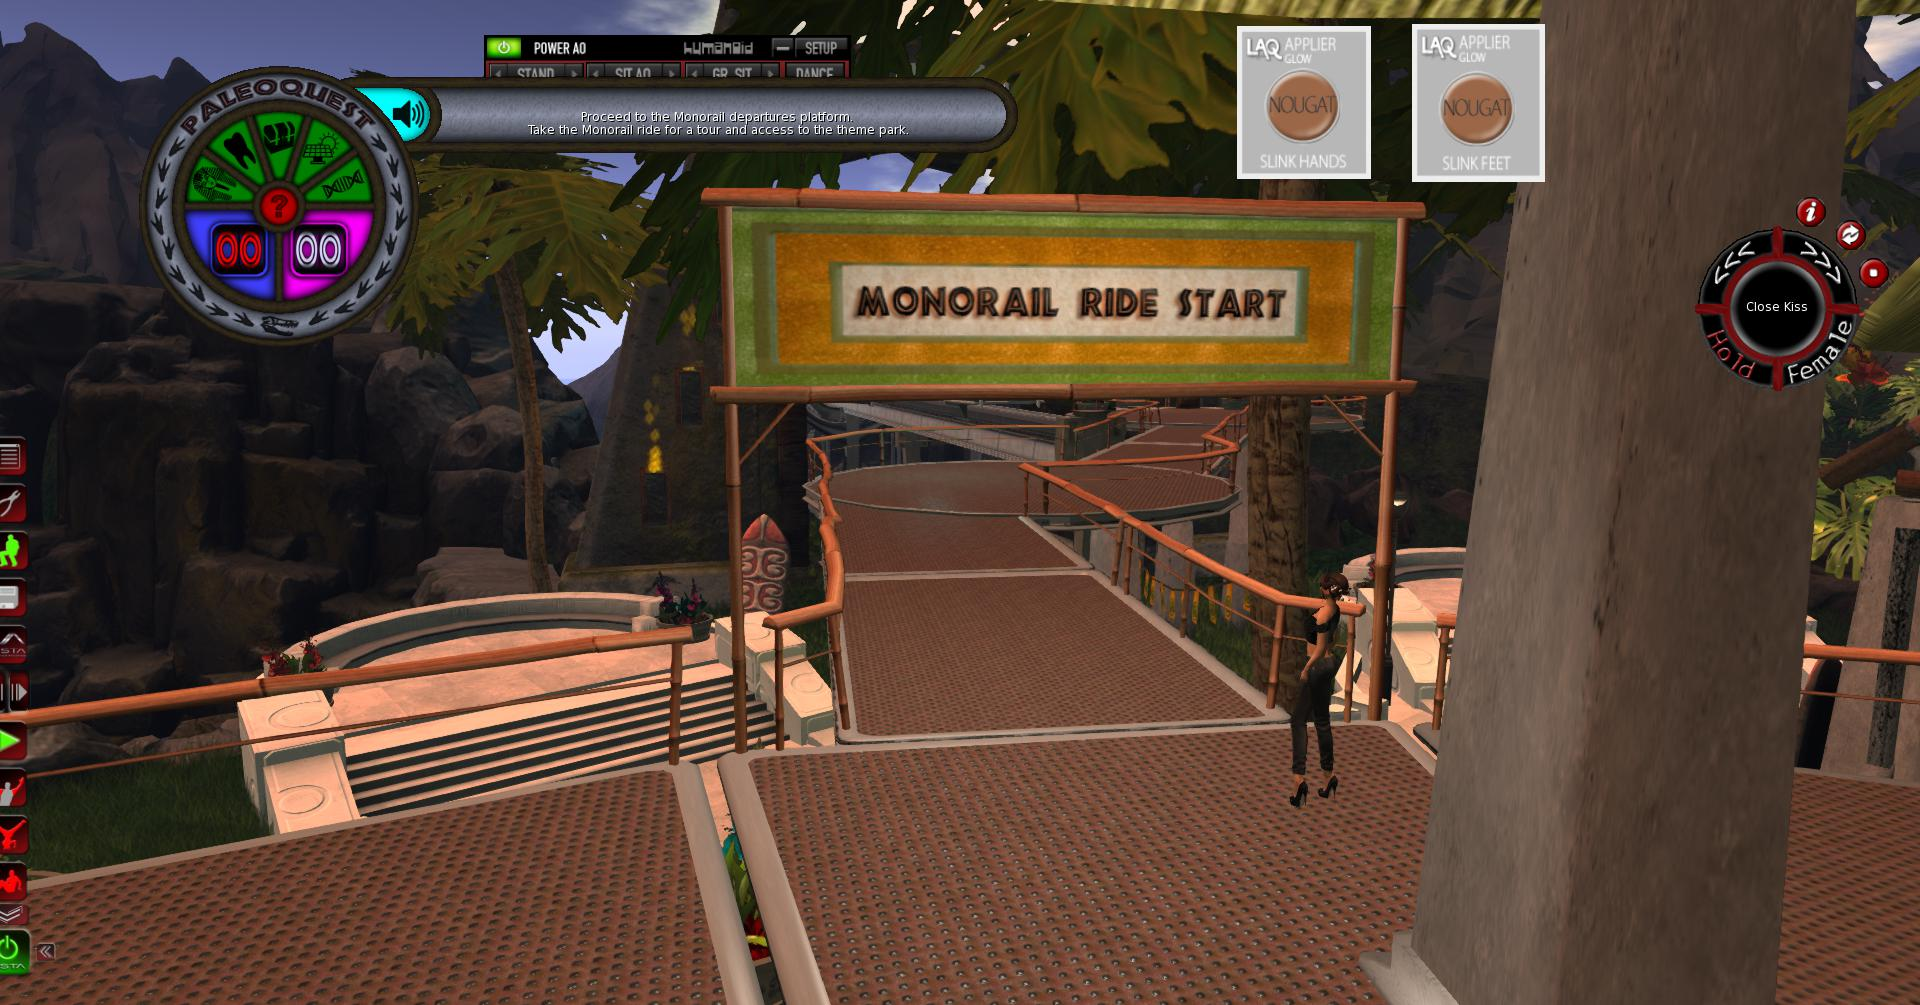 Make sure you get on the Monorail at the Start Gate.